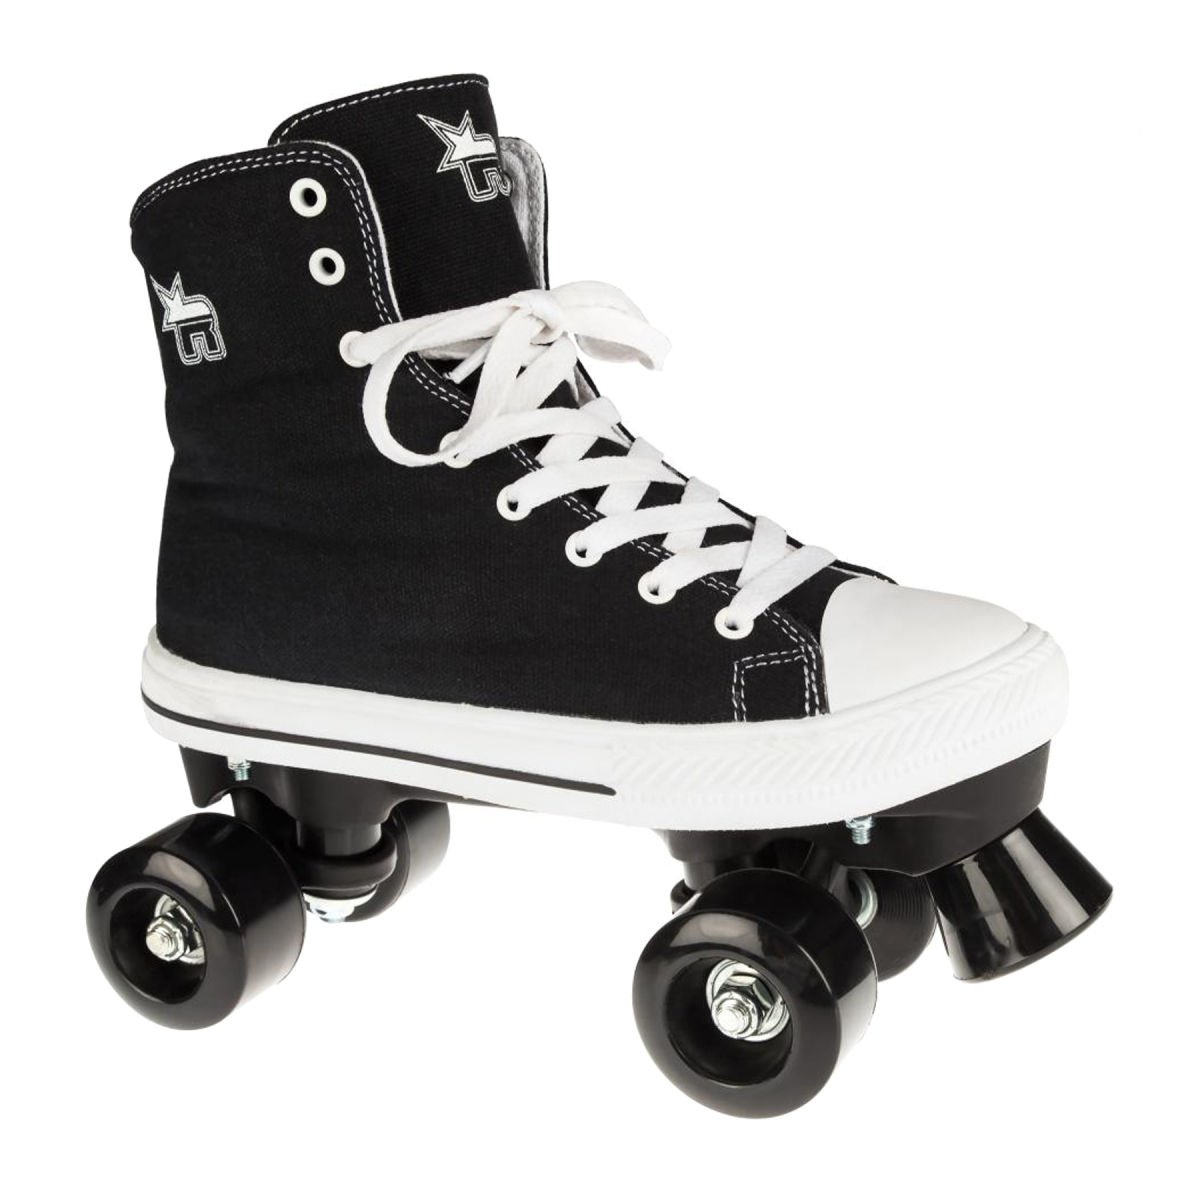 Rookie Canvas High Patines con Ruedas Unisex Niños